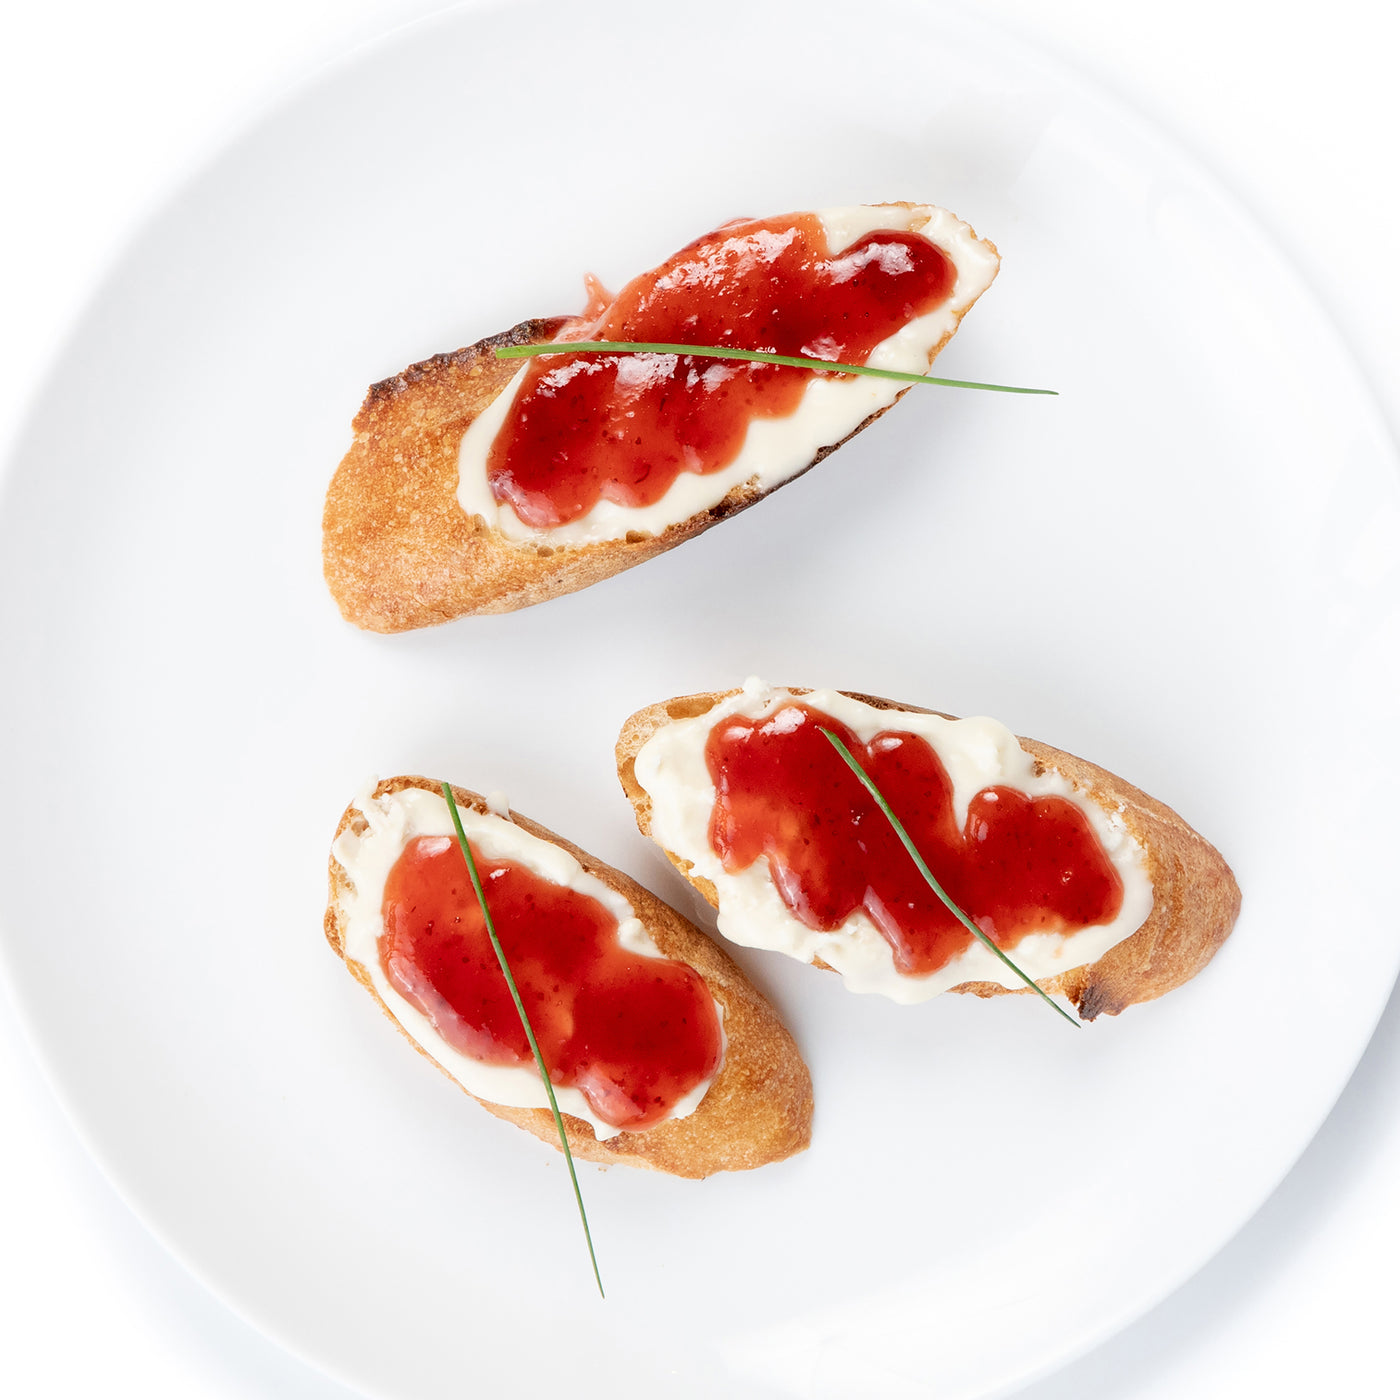 Fire-Roasted Brie Crostini with Strawberry & Rose